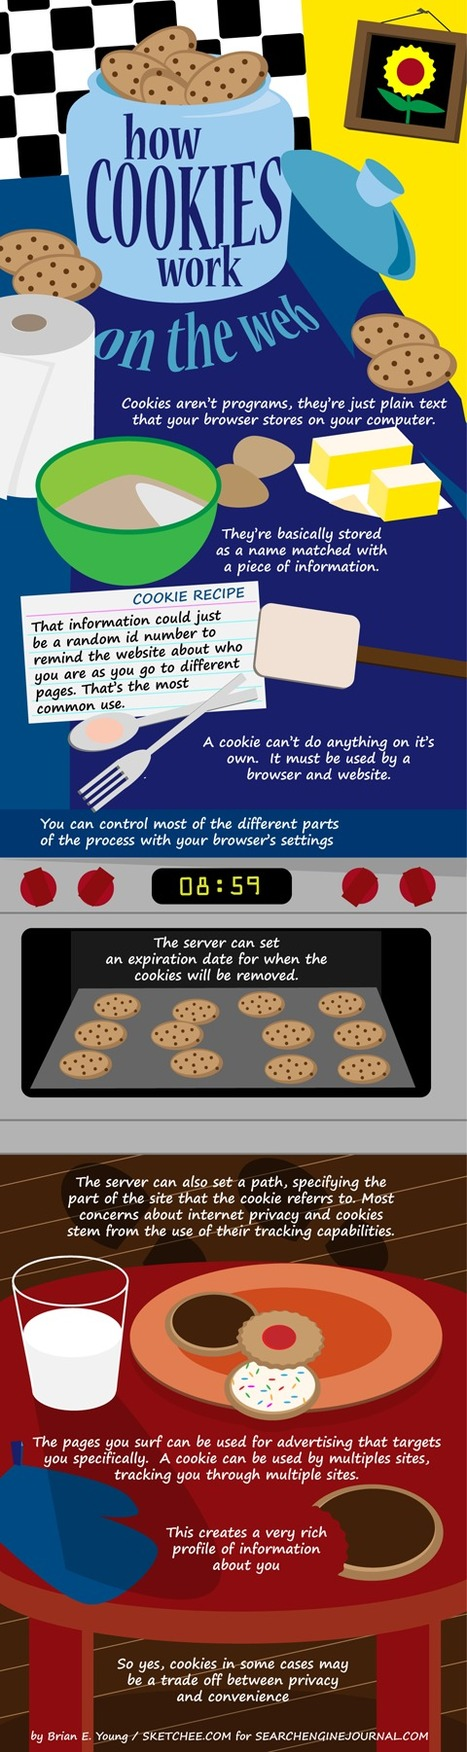 How Cookies Work on the Web [infographic] | Easy Resource | Scoop.it